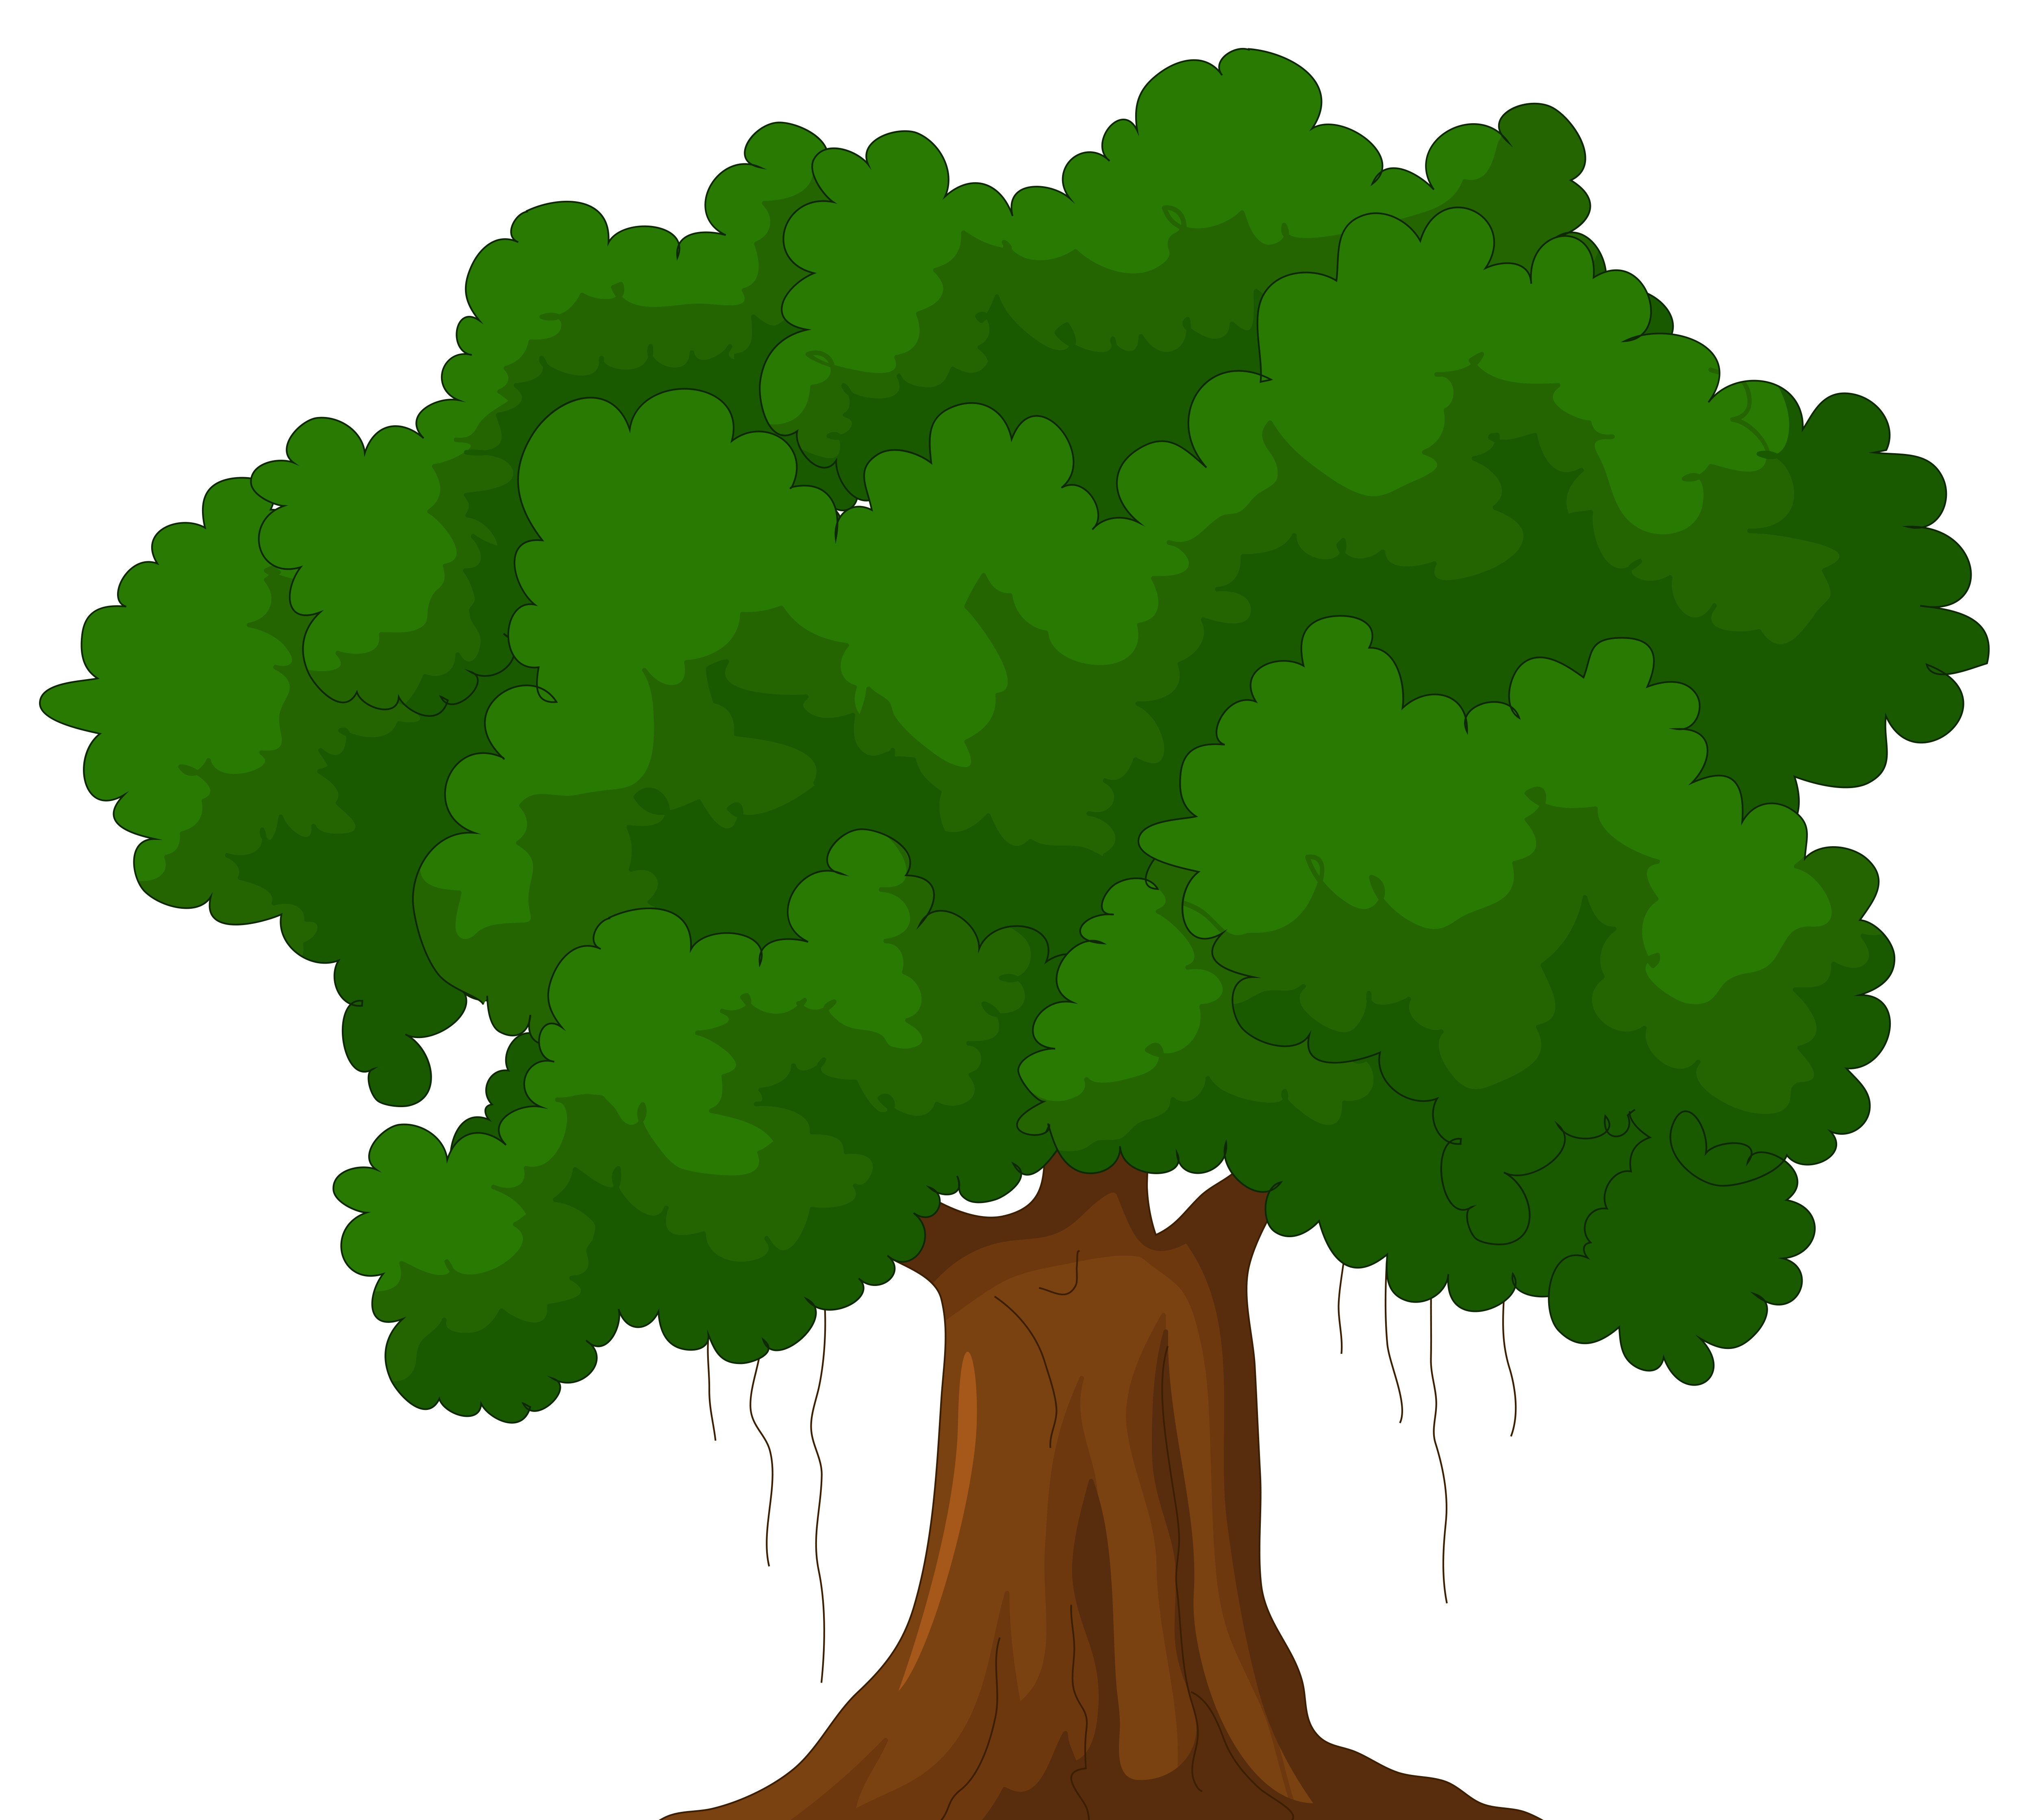 4992x4478 Cartoon Green Tree Png Clipart